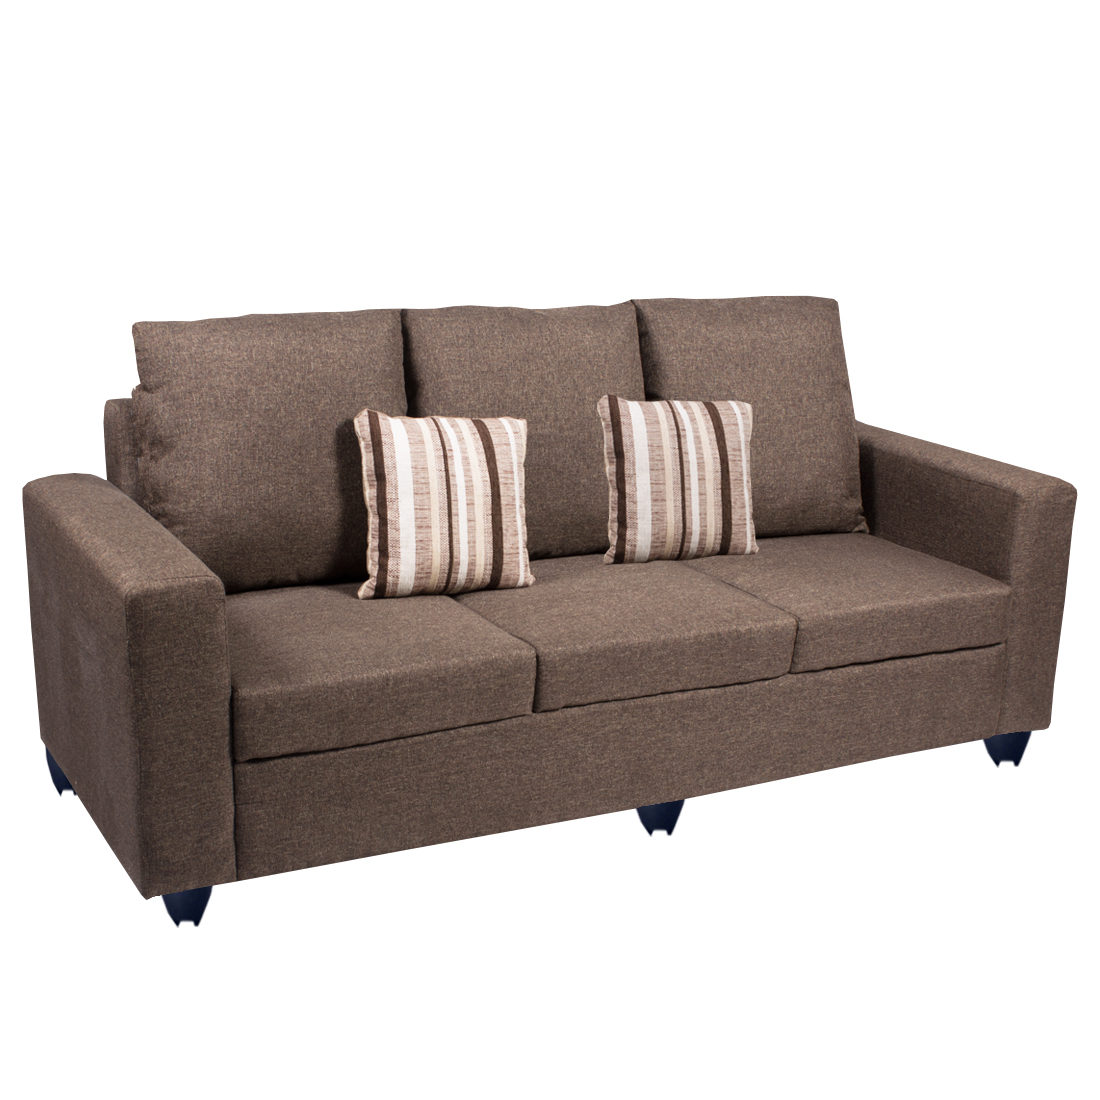 Bharat Lifestyle Corsa Fabric 3 Seater Sofa Color Dark Brown Online Price In India Life